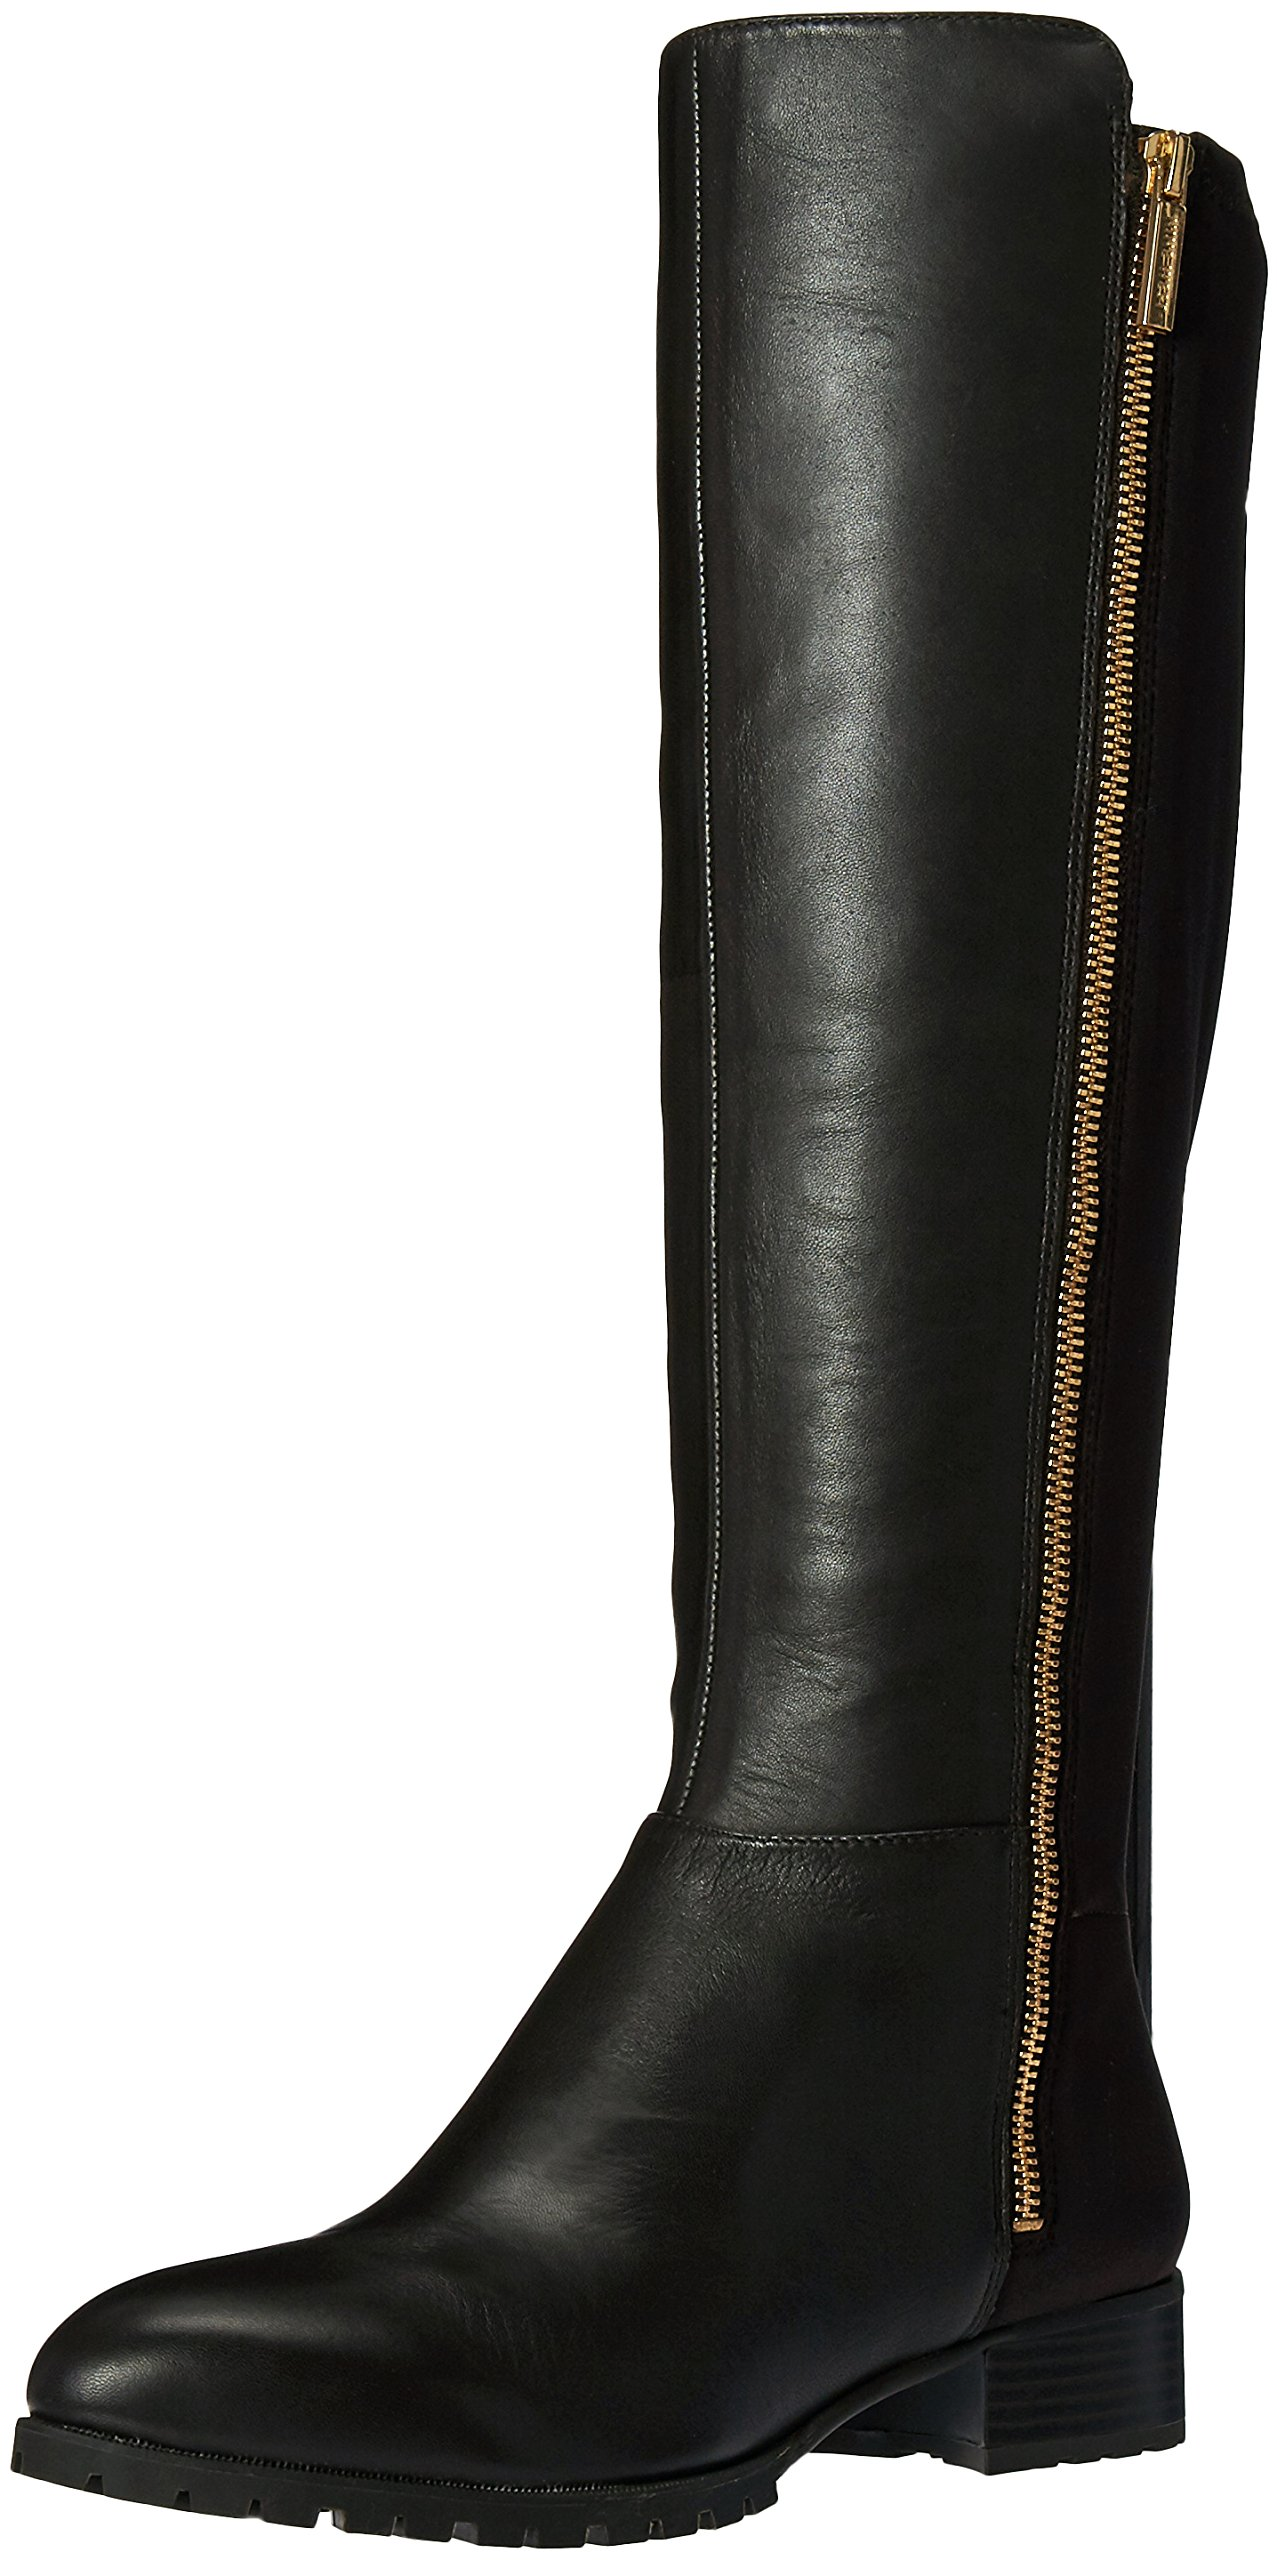 Nine West Women's Legretto Knee-High Boot, Dark Brown, 8.5 M US